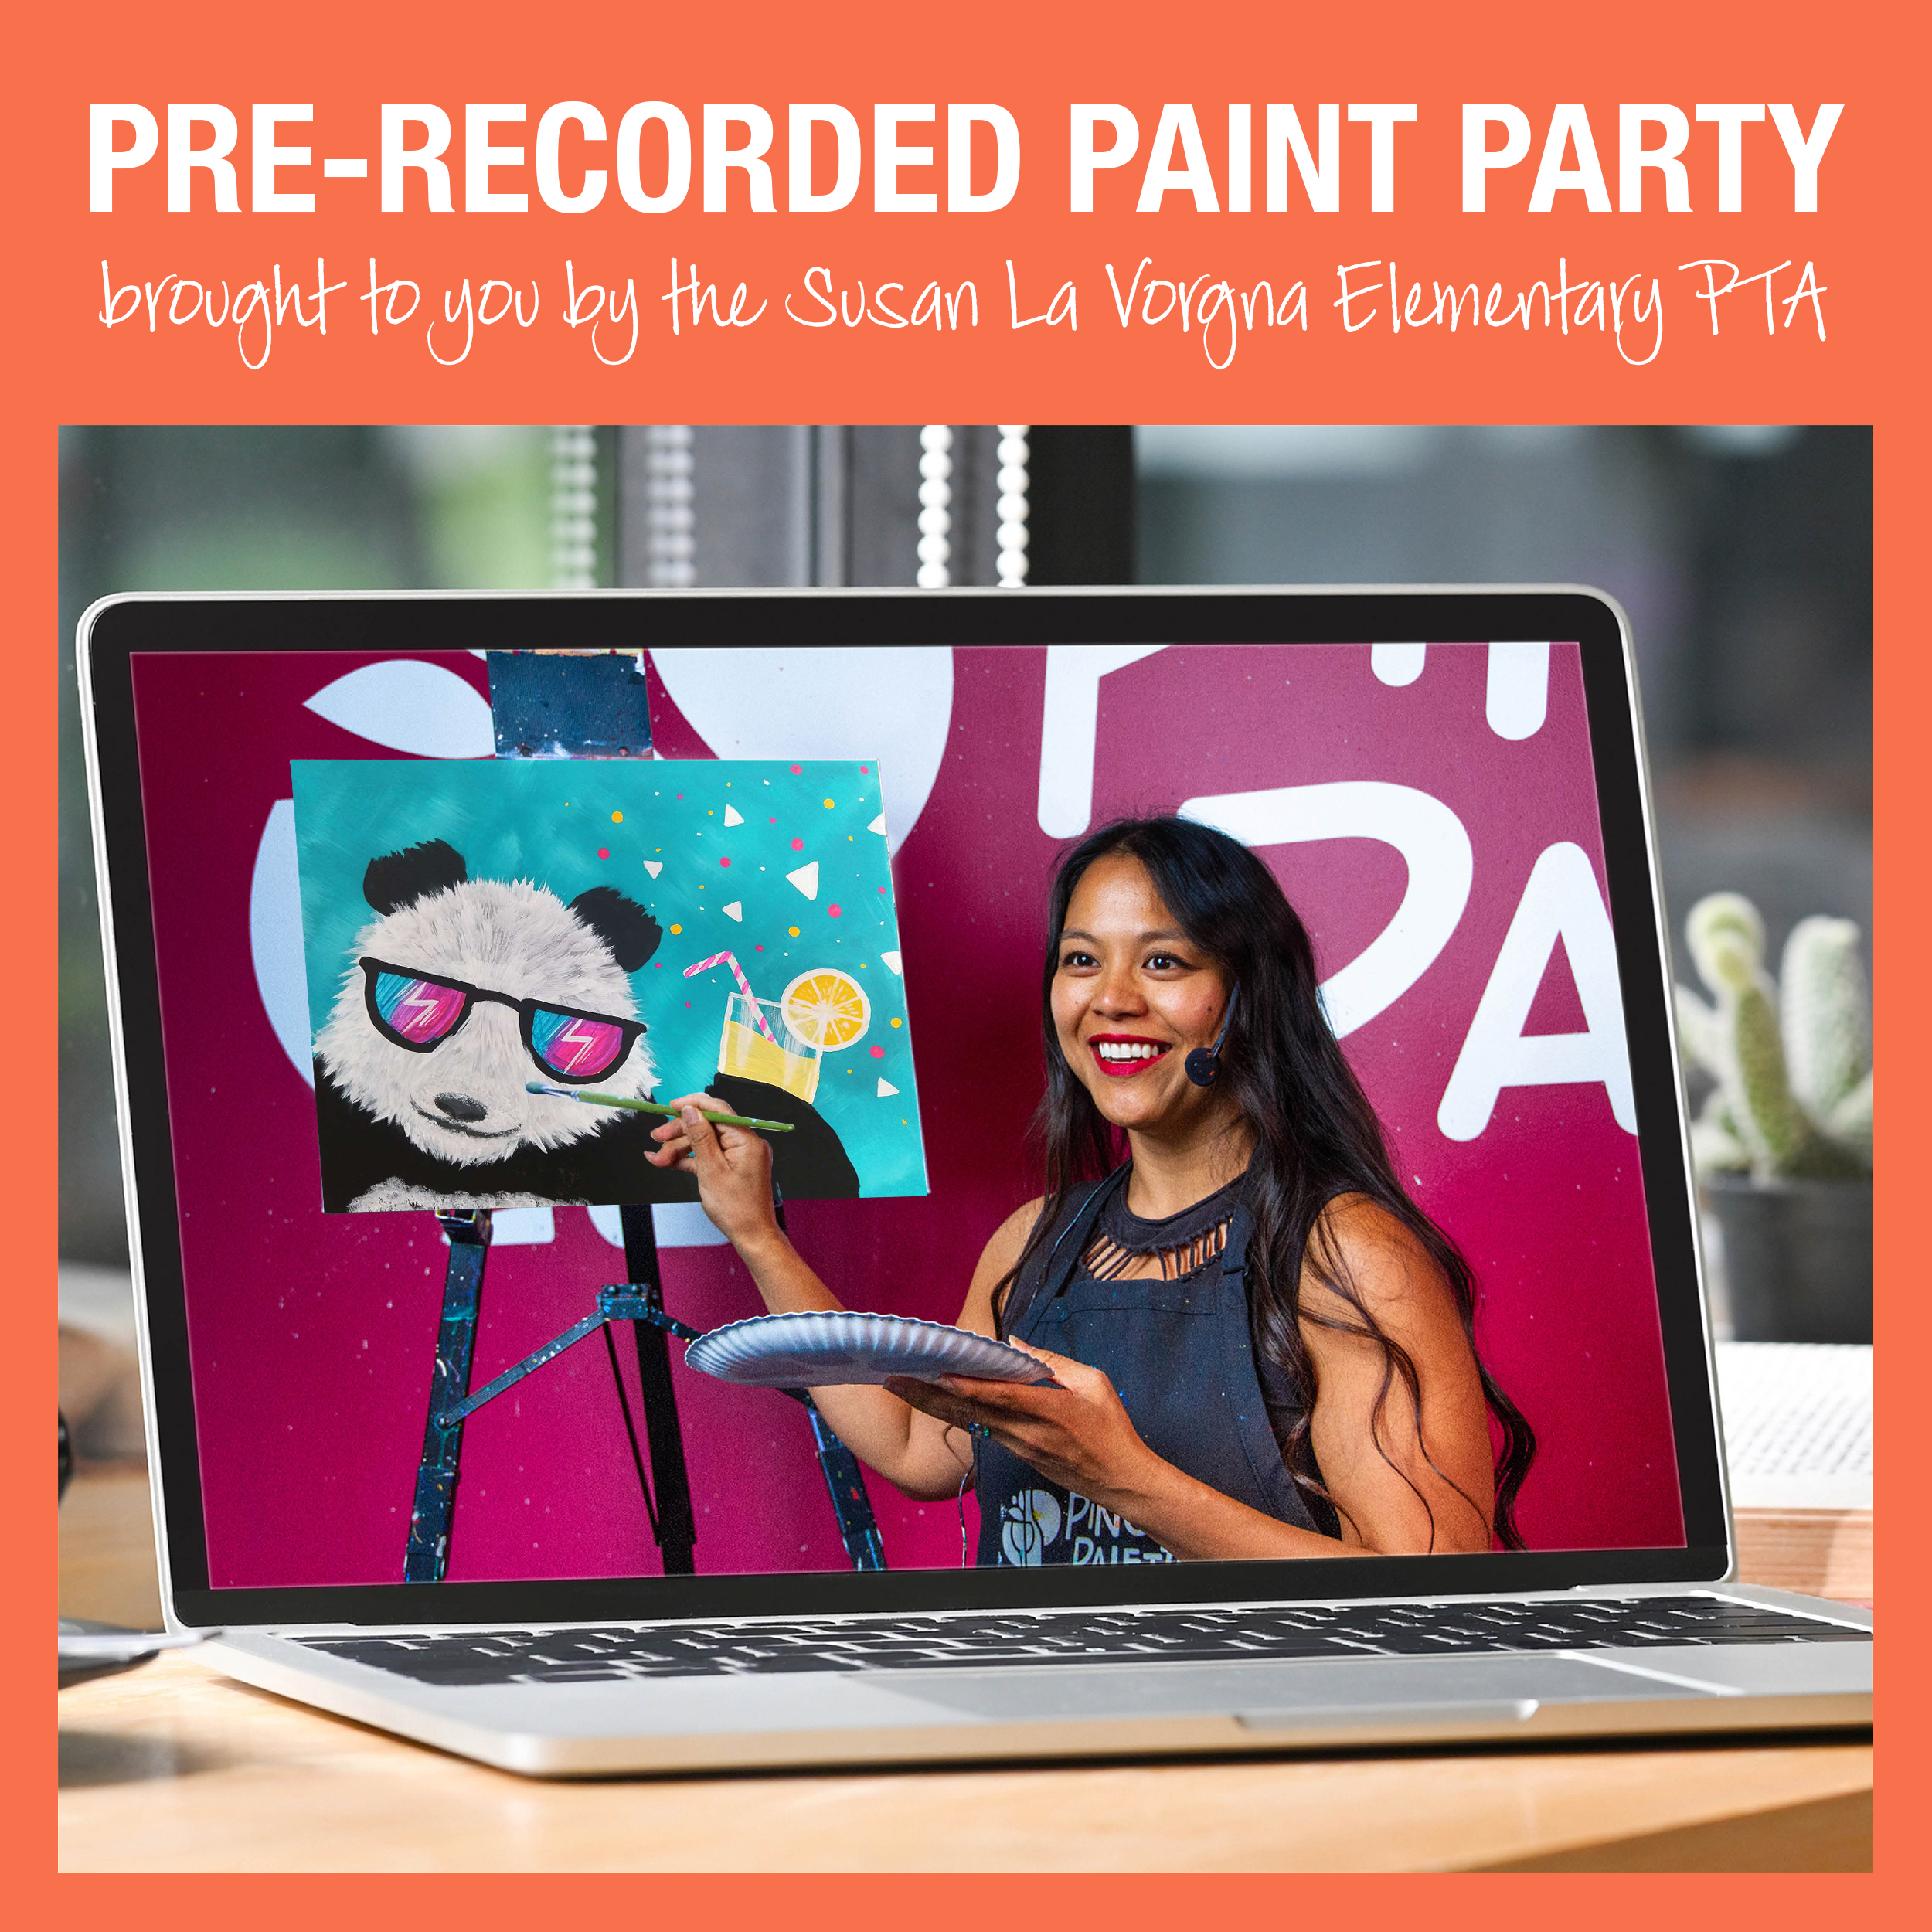 Pre-recorded Paint Party Video